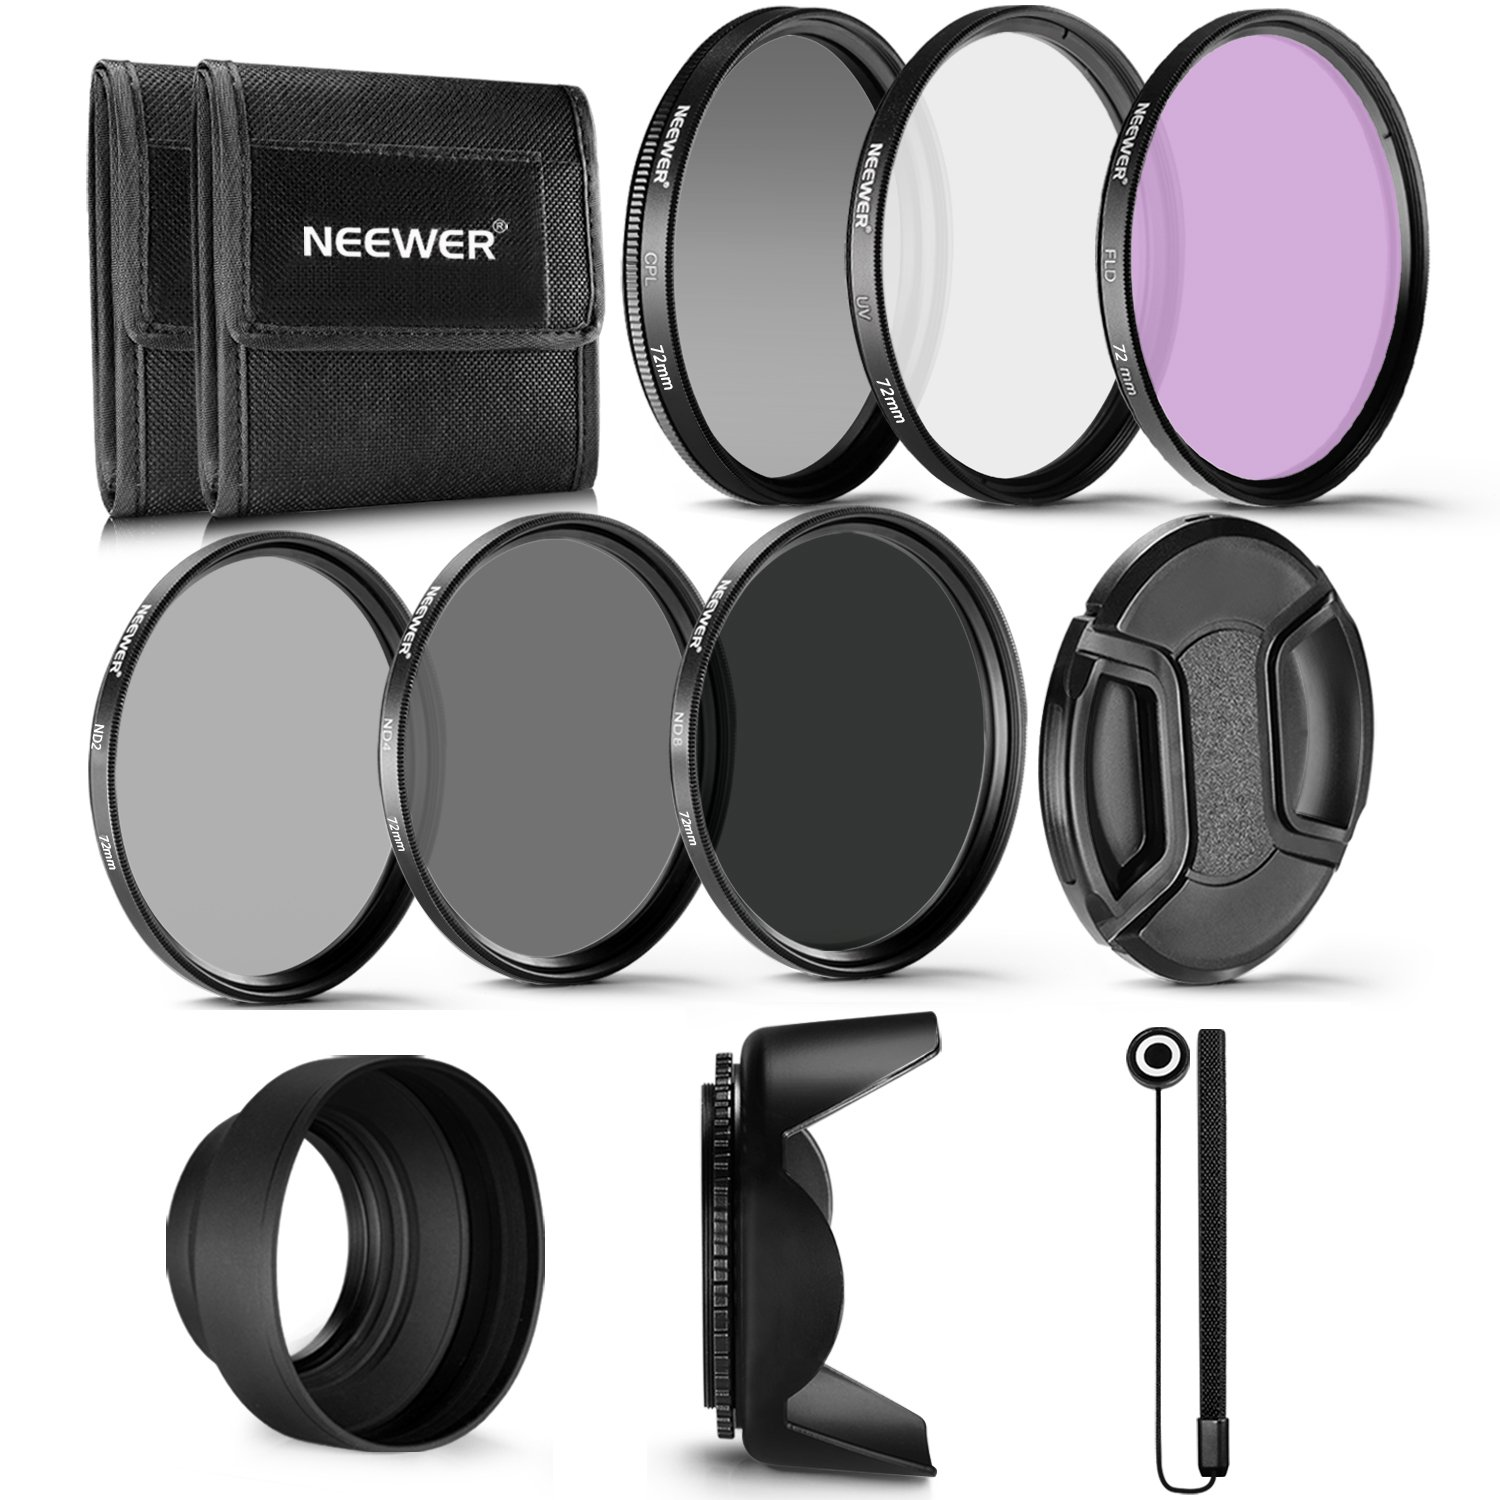 Neewer 72MM Professional UV CPL FLD Lens Filter and ND Neutral Density Filter(ND2, ND4, ND8) Accessory Kit for Canon EF 35mm f/1.4L, EF 85mm f/1.2L II by Neewer